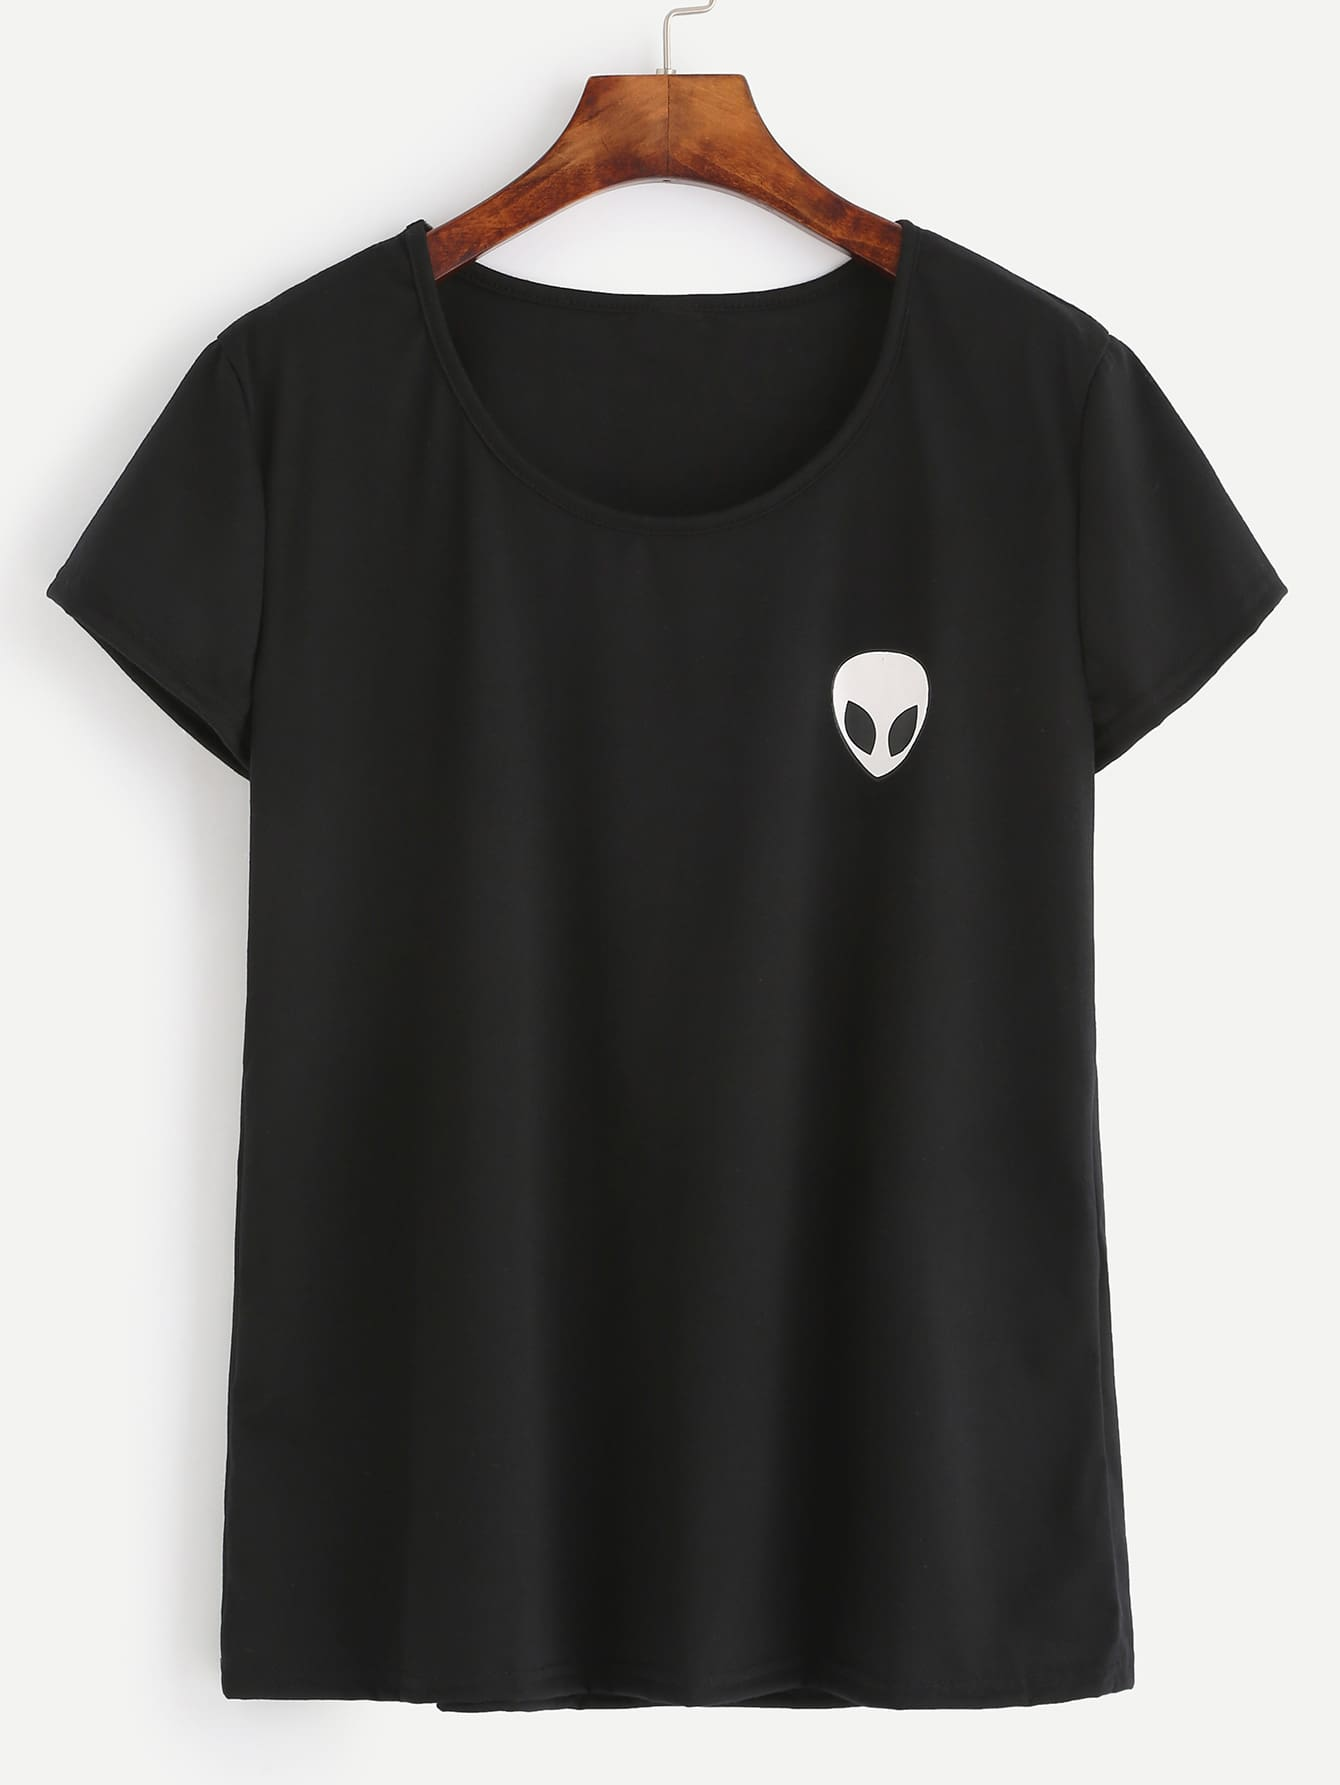 Black Alien Print T-shirtBlack Alien Print T-shirt<br><br>color: Black<br>size: L,M